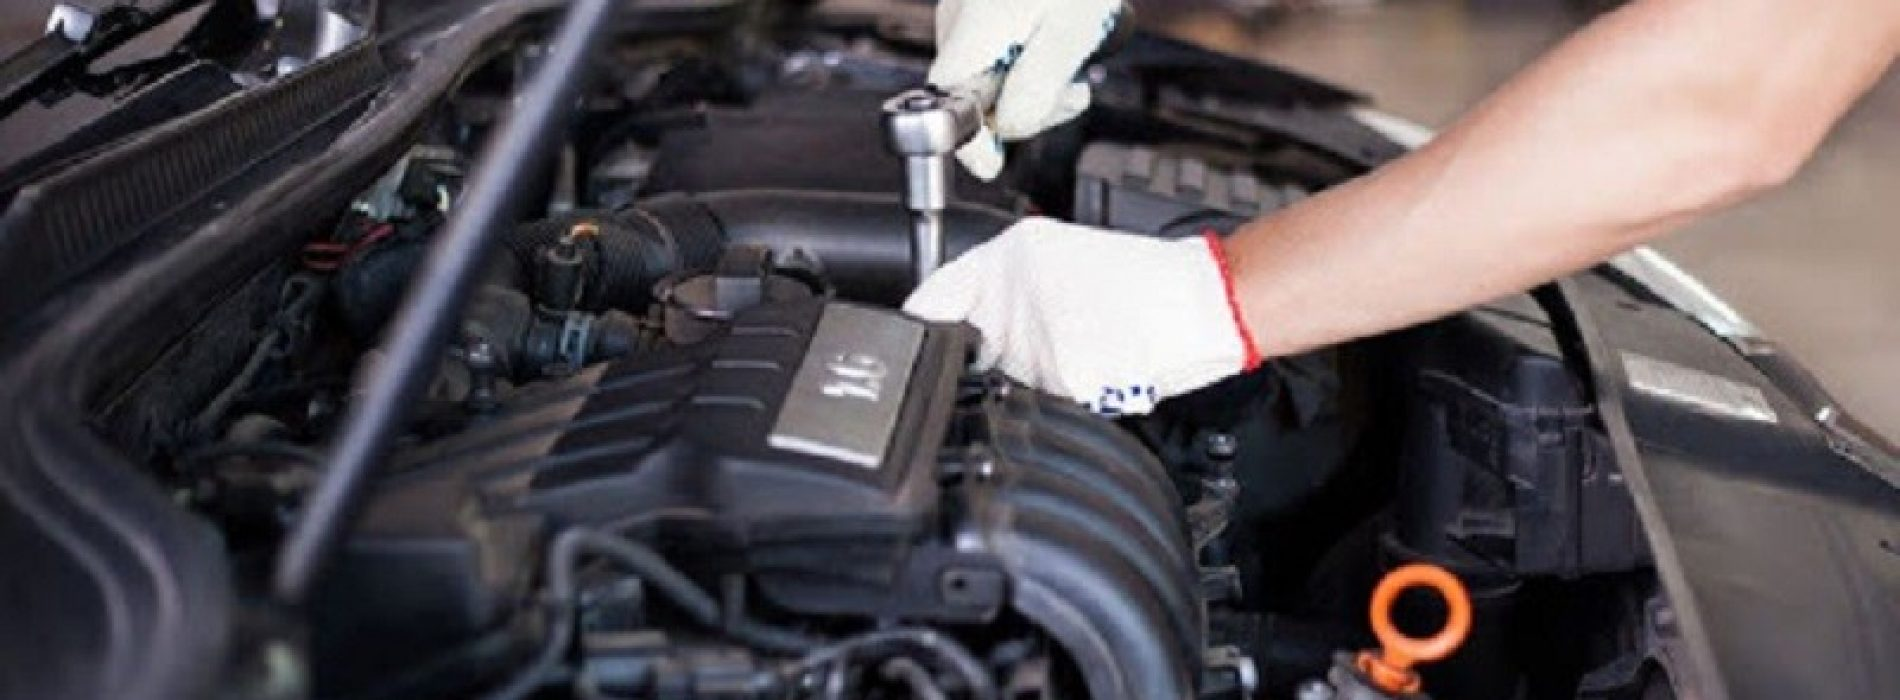 How to choose the best car repair service?